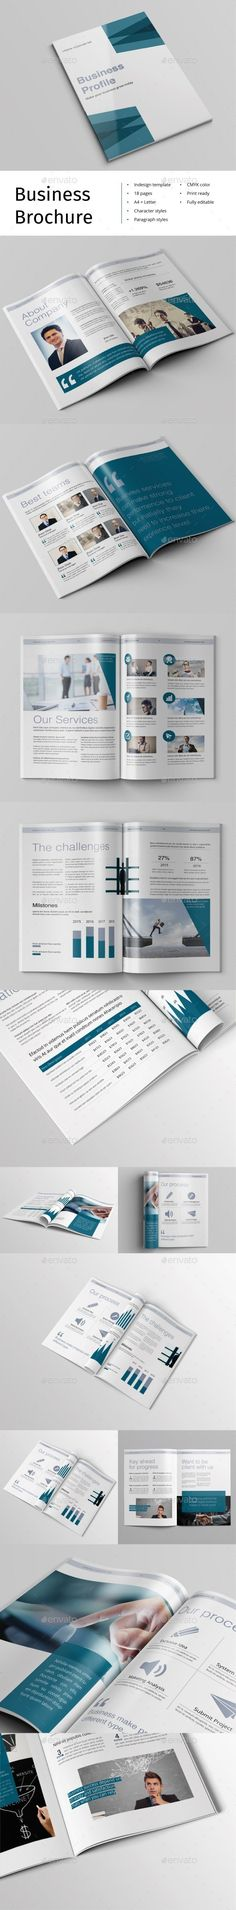 Behance TriFold Brochure Template  FreebieHttps